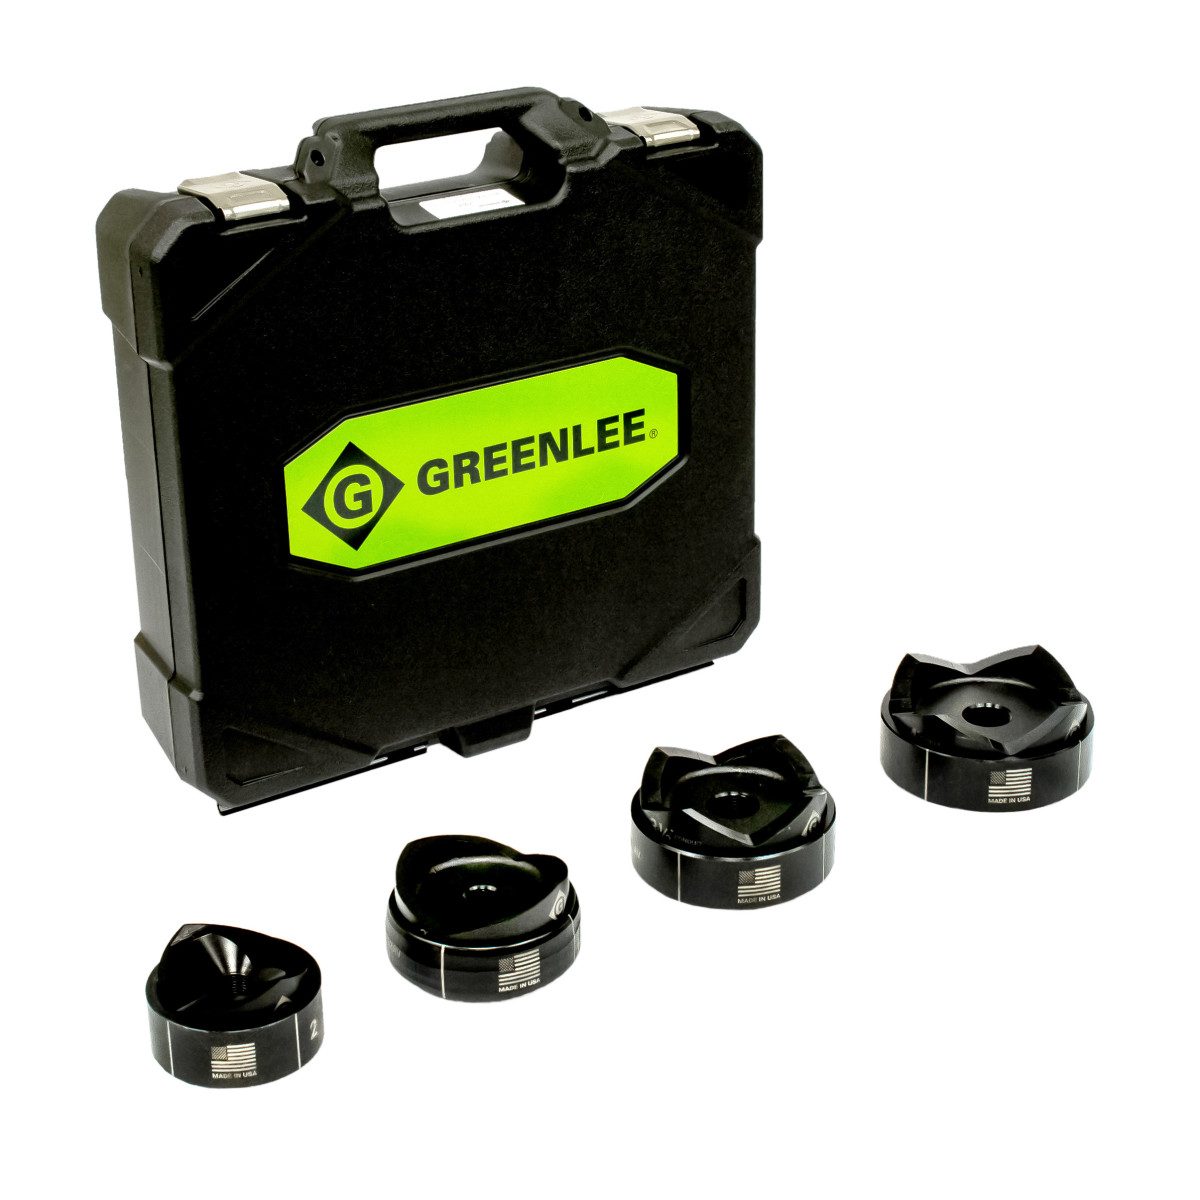 GRT7304 STANDARD PUNCHES AND DIES (NODRAW STUDS) FOR 2-1/2 THROUGH4 CONDUIT,IN PLASTIC CASE, GREENLEE